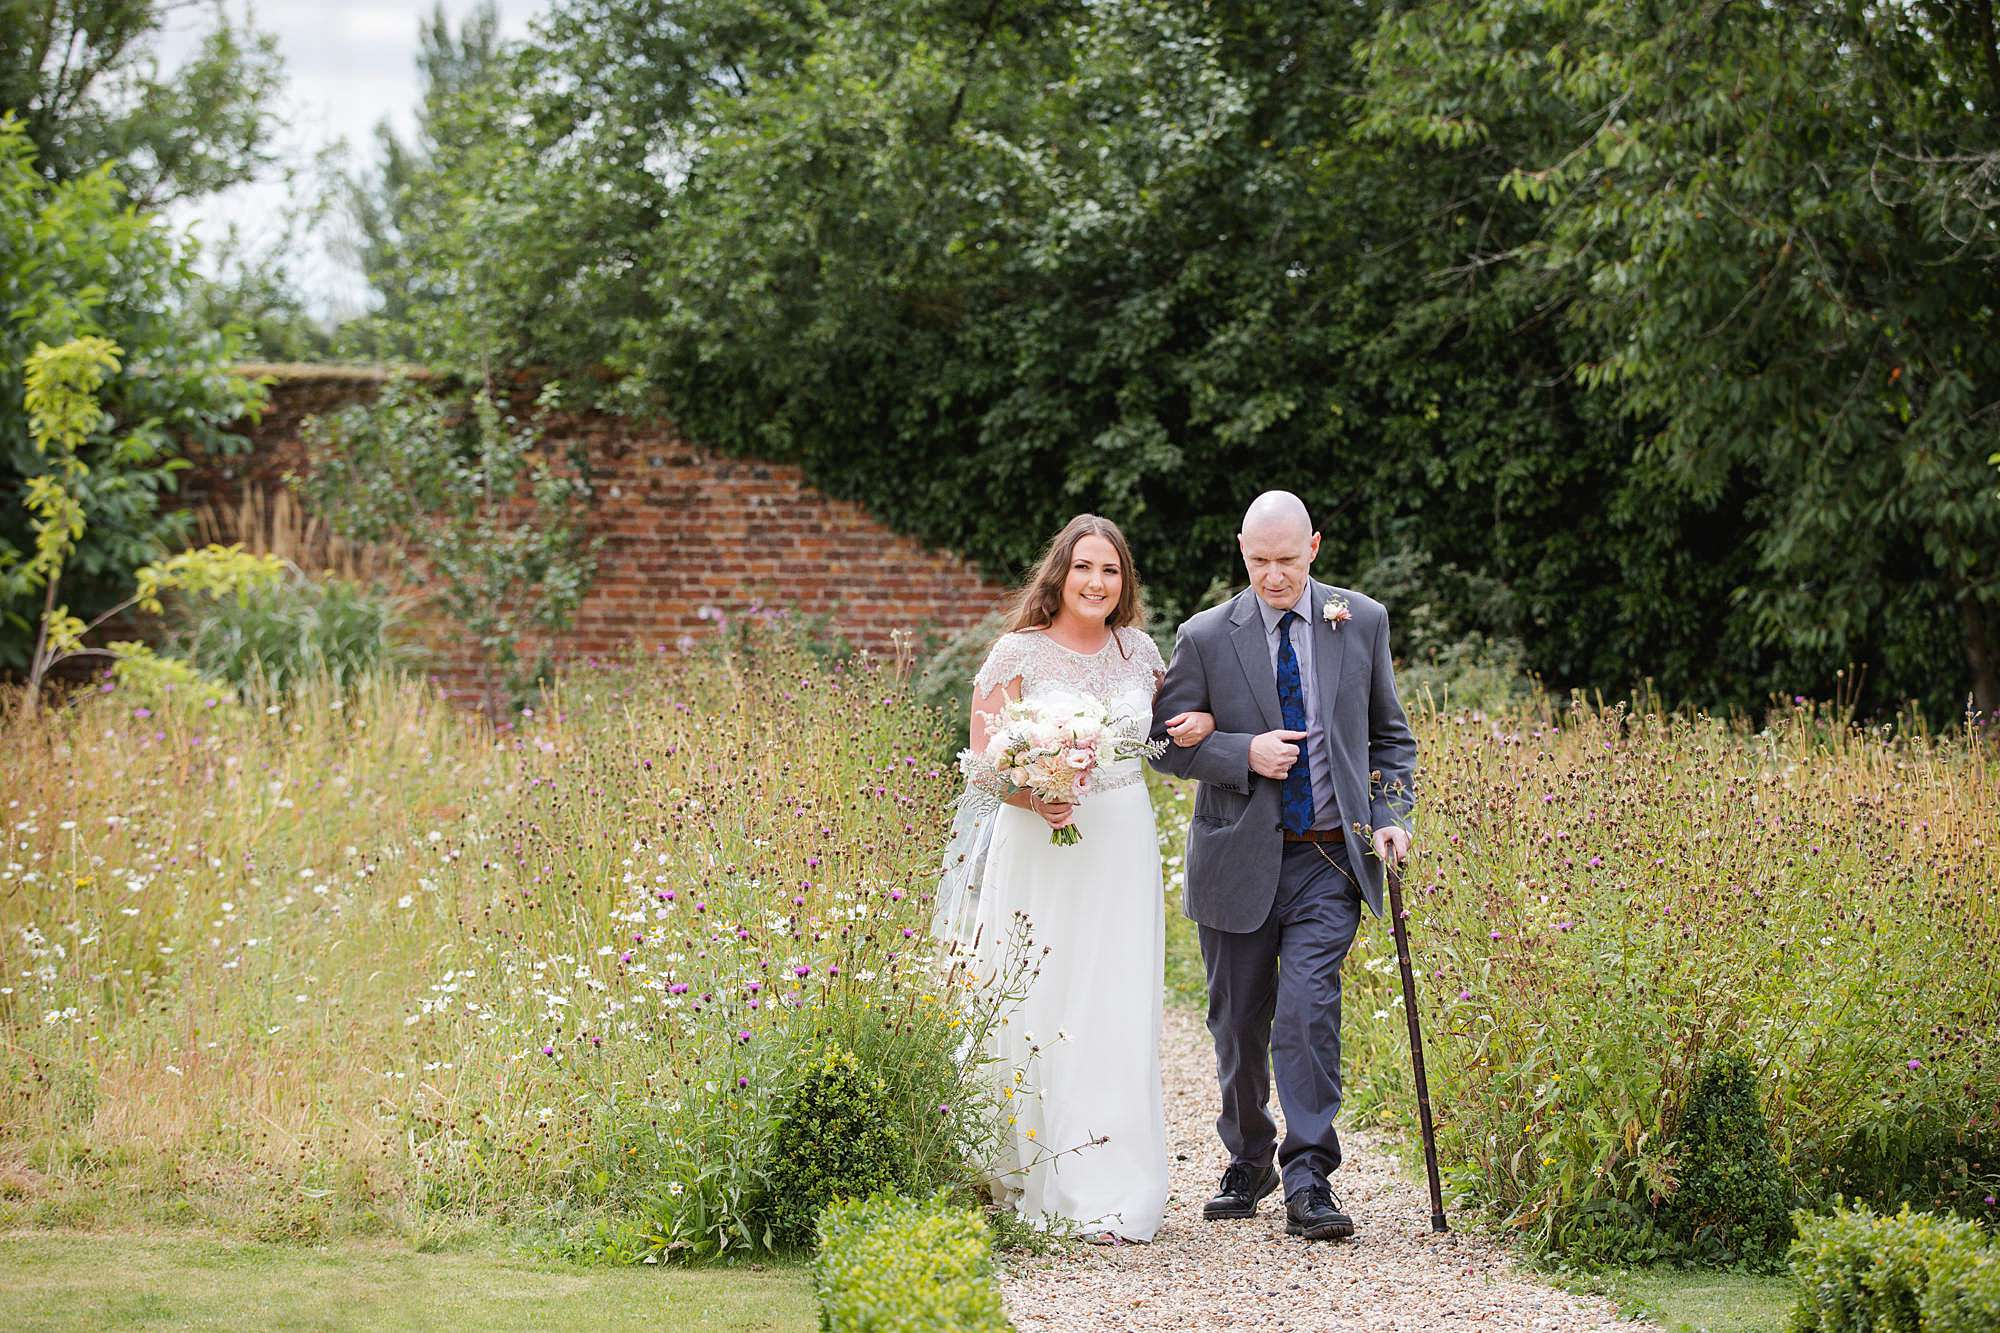 fun outdoor wedding bride walks down garden aisle